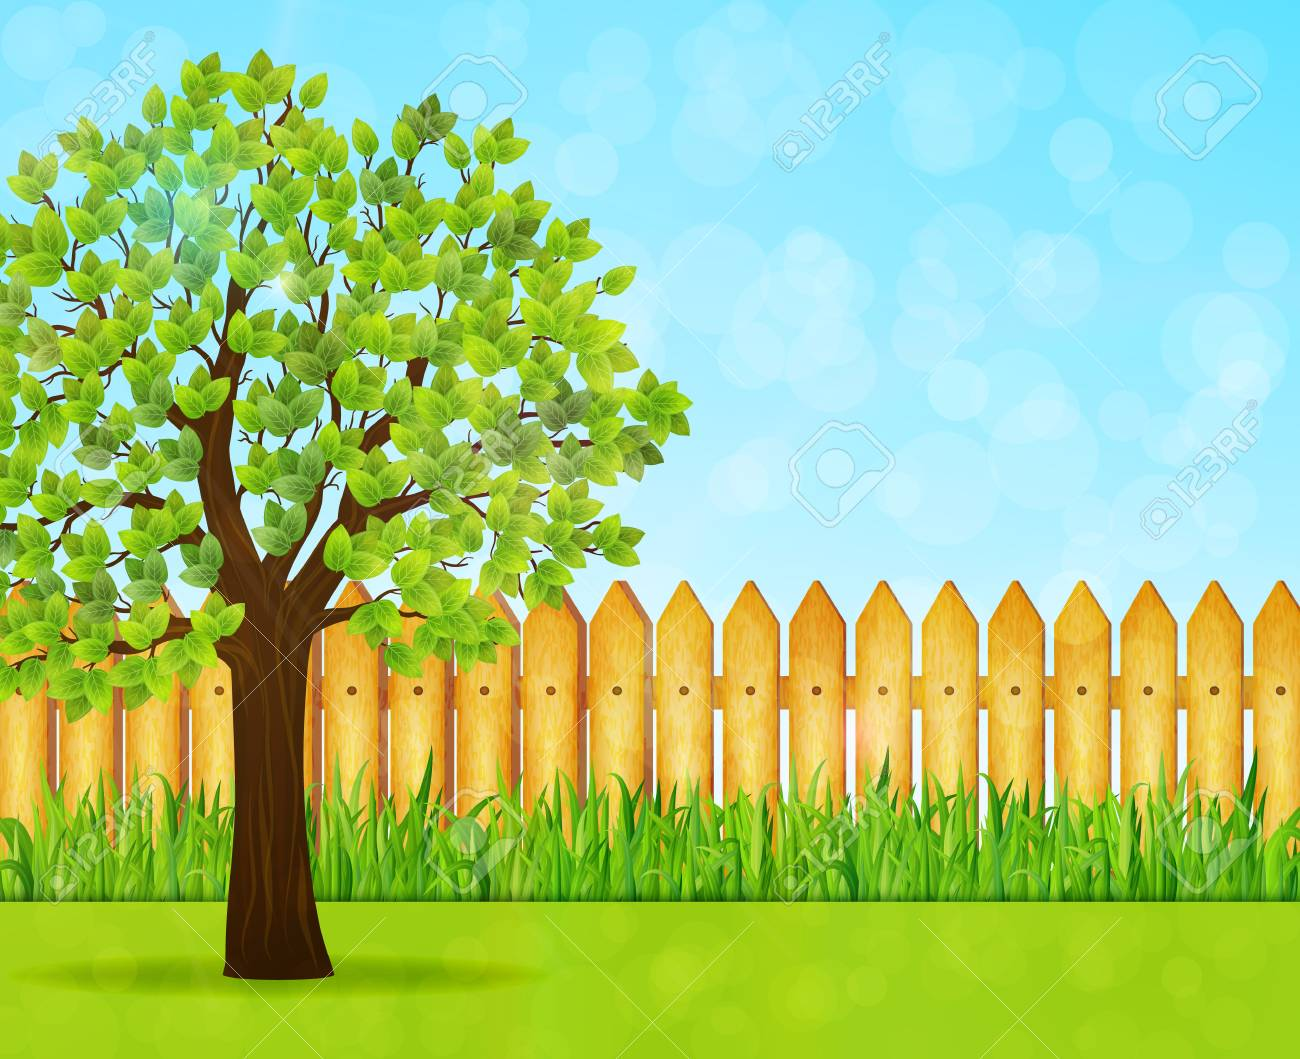 Garden background with green tree and wooden fence » Clipart.